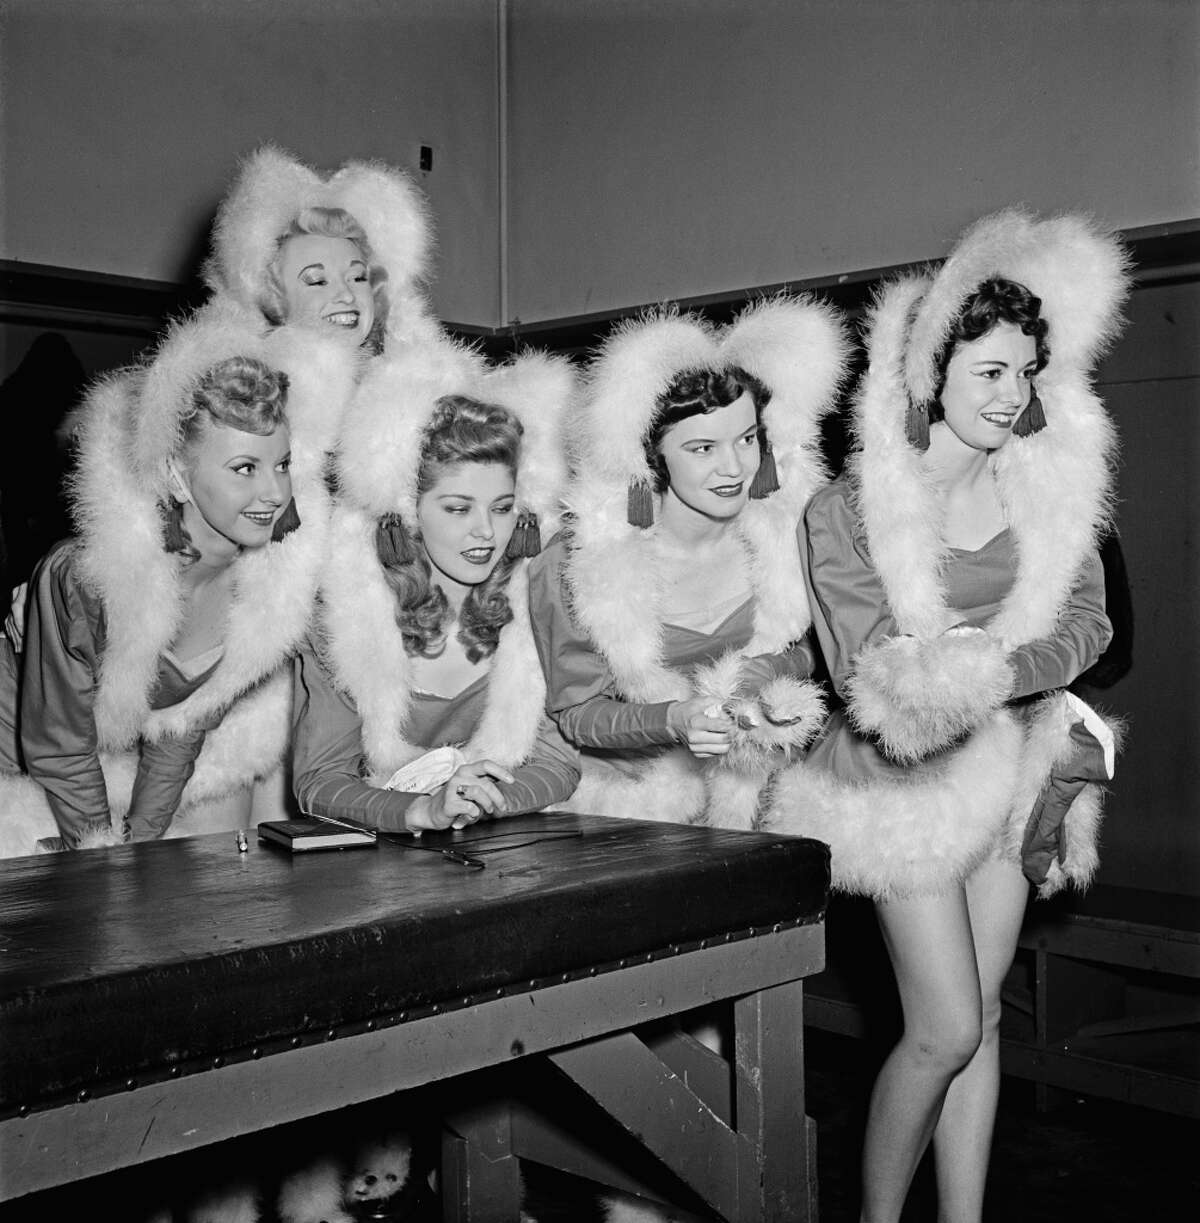 Members of The Rockettes precision dance company backstage at the Radio City Music Hall in Manhattan, New York City, circa 1950. They are wearing fur-trimmed costumes for a Christmas show. On the far right is dancer Gloria O'Malley.